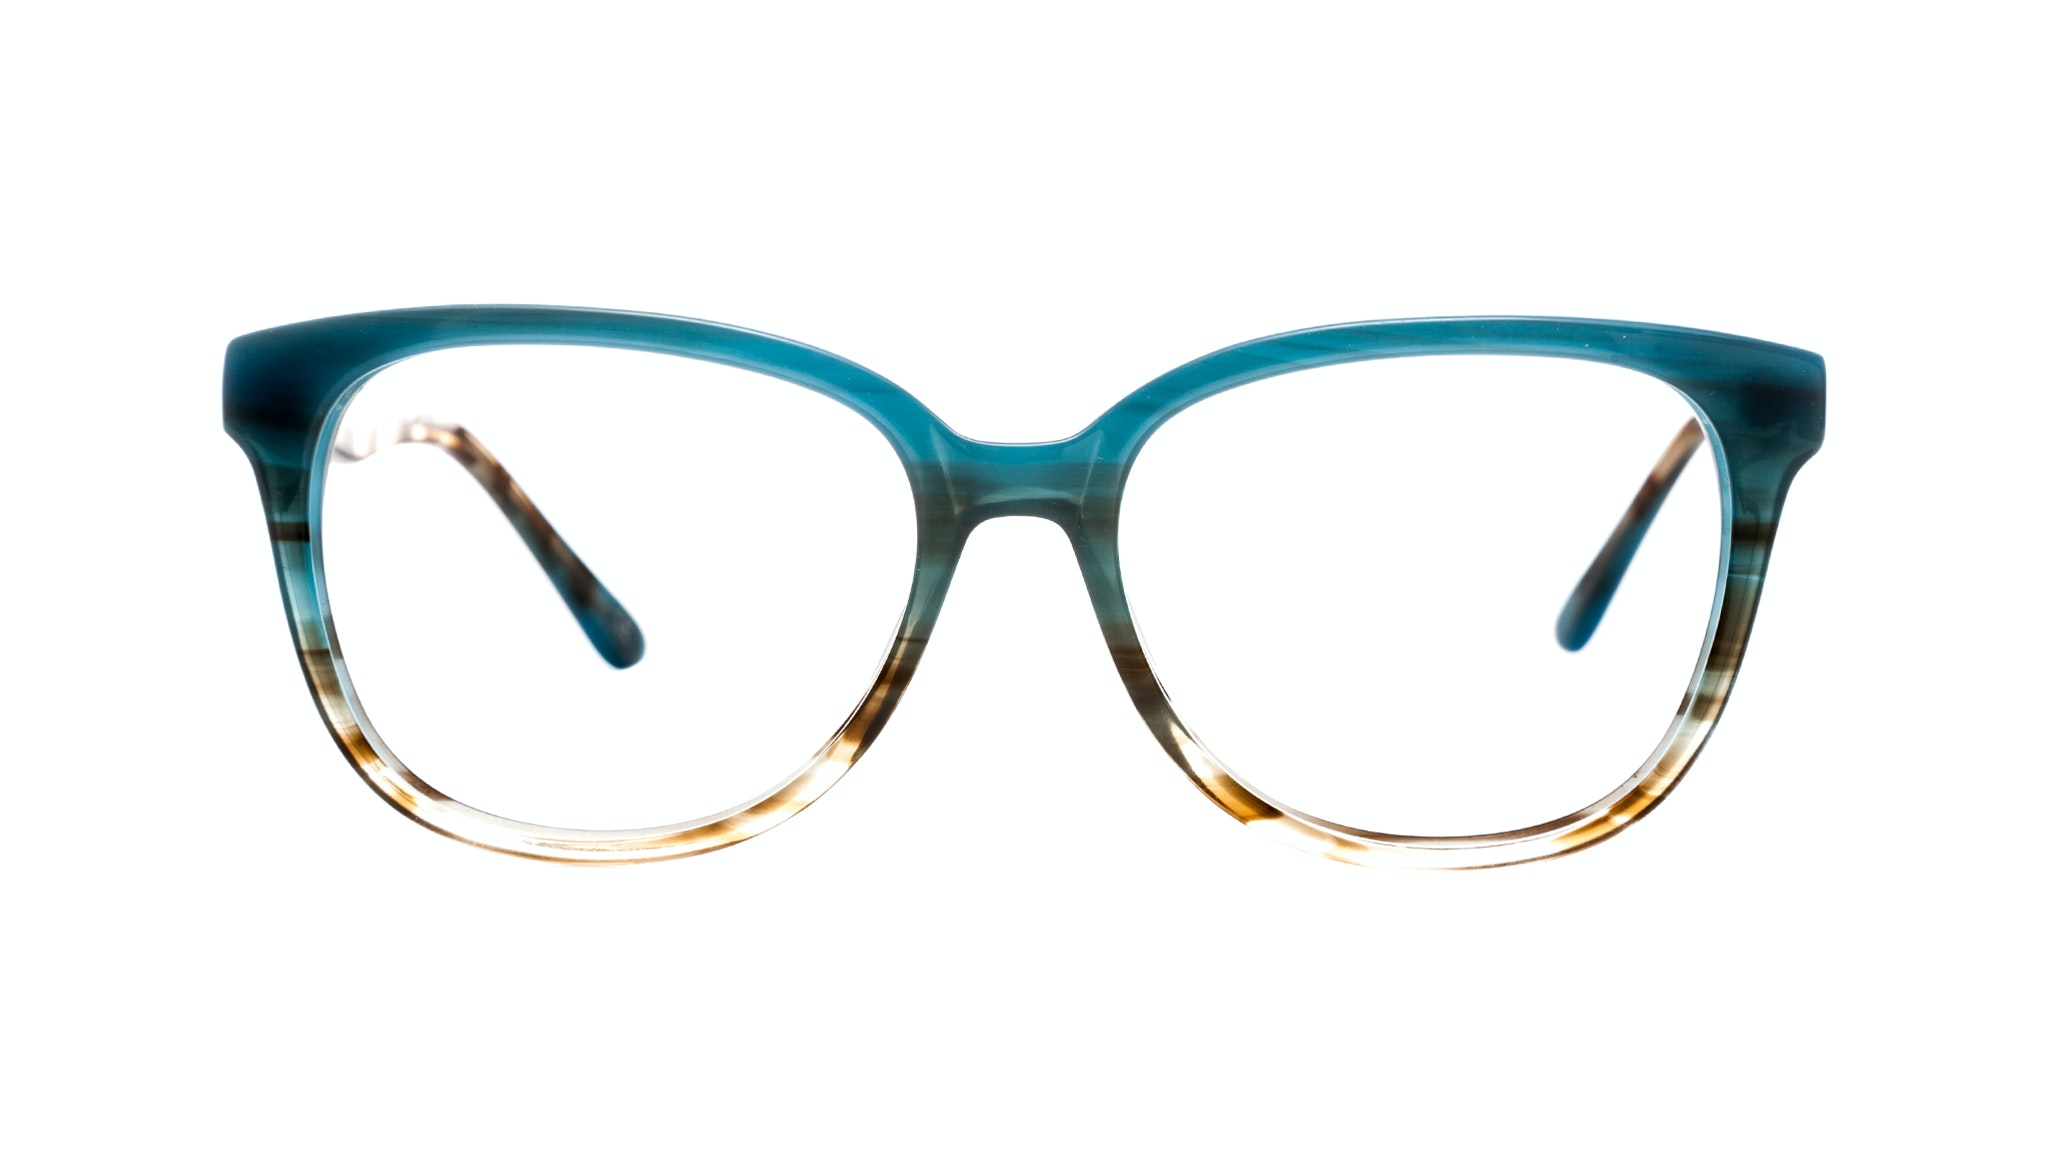 Affordable Fashion Glasses Round Eyeglasses Women Fancy-Pants Teal Front